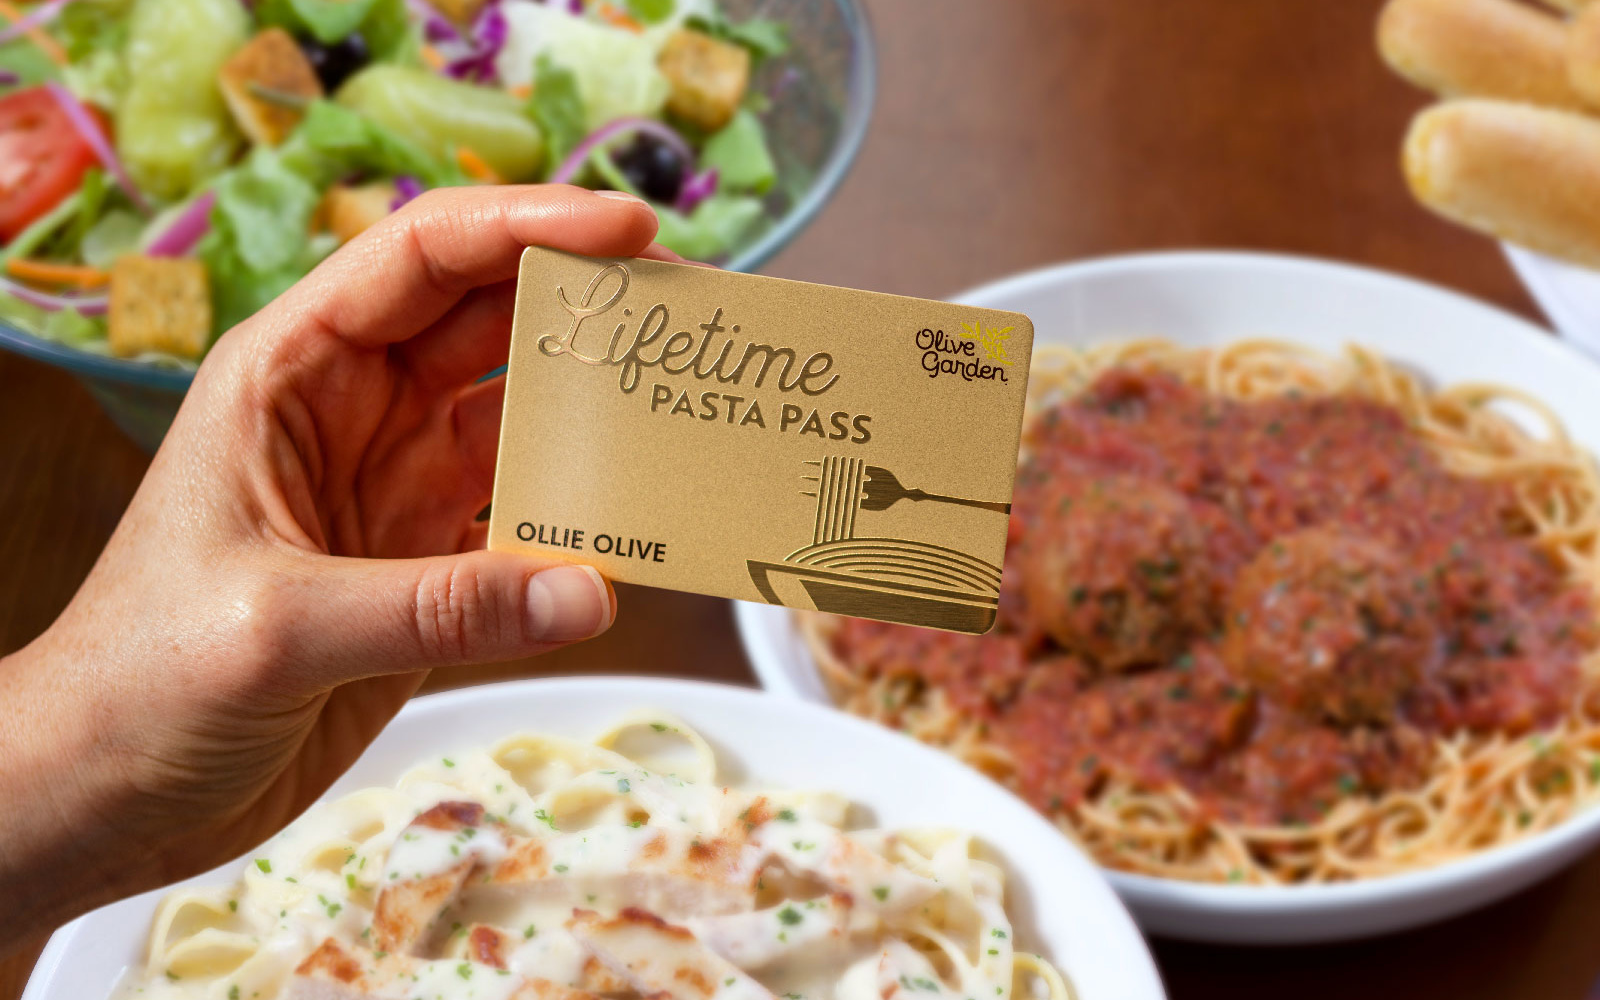 Now's your chance to buy an Olive Garden Lifetime Pasta Pass